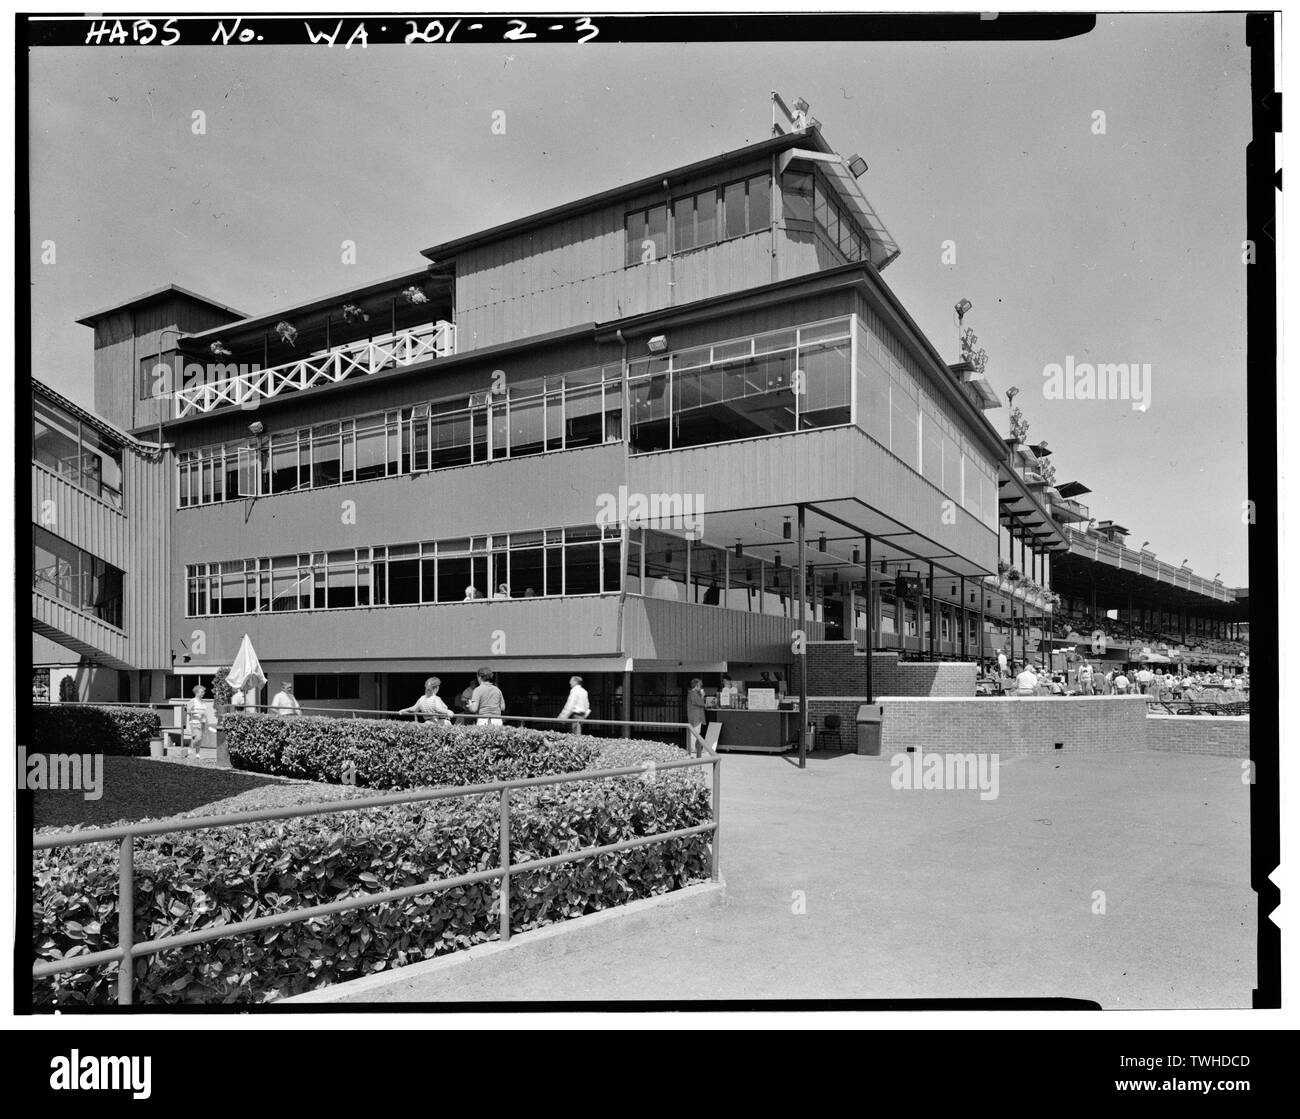 SE corner of south addition to the Clubhouse. Camera pointed NW. Lower level contains the Silks Dining Room. Above that is the Turf Club, which ran throughout all the top floors in the Clubhouse and its additions. On top of the building is fourth and final cupola added to the Clubhouse. (HABS negative is a duplicate negative made from original in the collection of John Stamets, Seattle, WA.) (June 1992) - Longacres, Clubhouse and Additions, 1621 Southwest Sixteenth Street, Renton, King County, WA; Gill, Barry Lee, transmitter - Stock Image